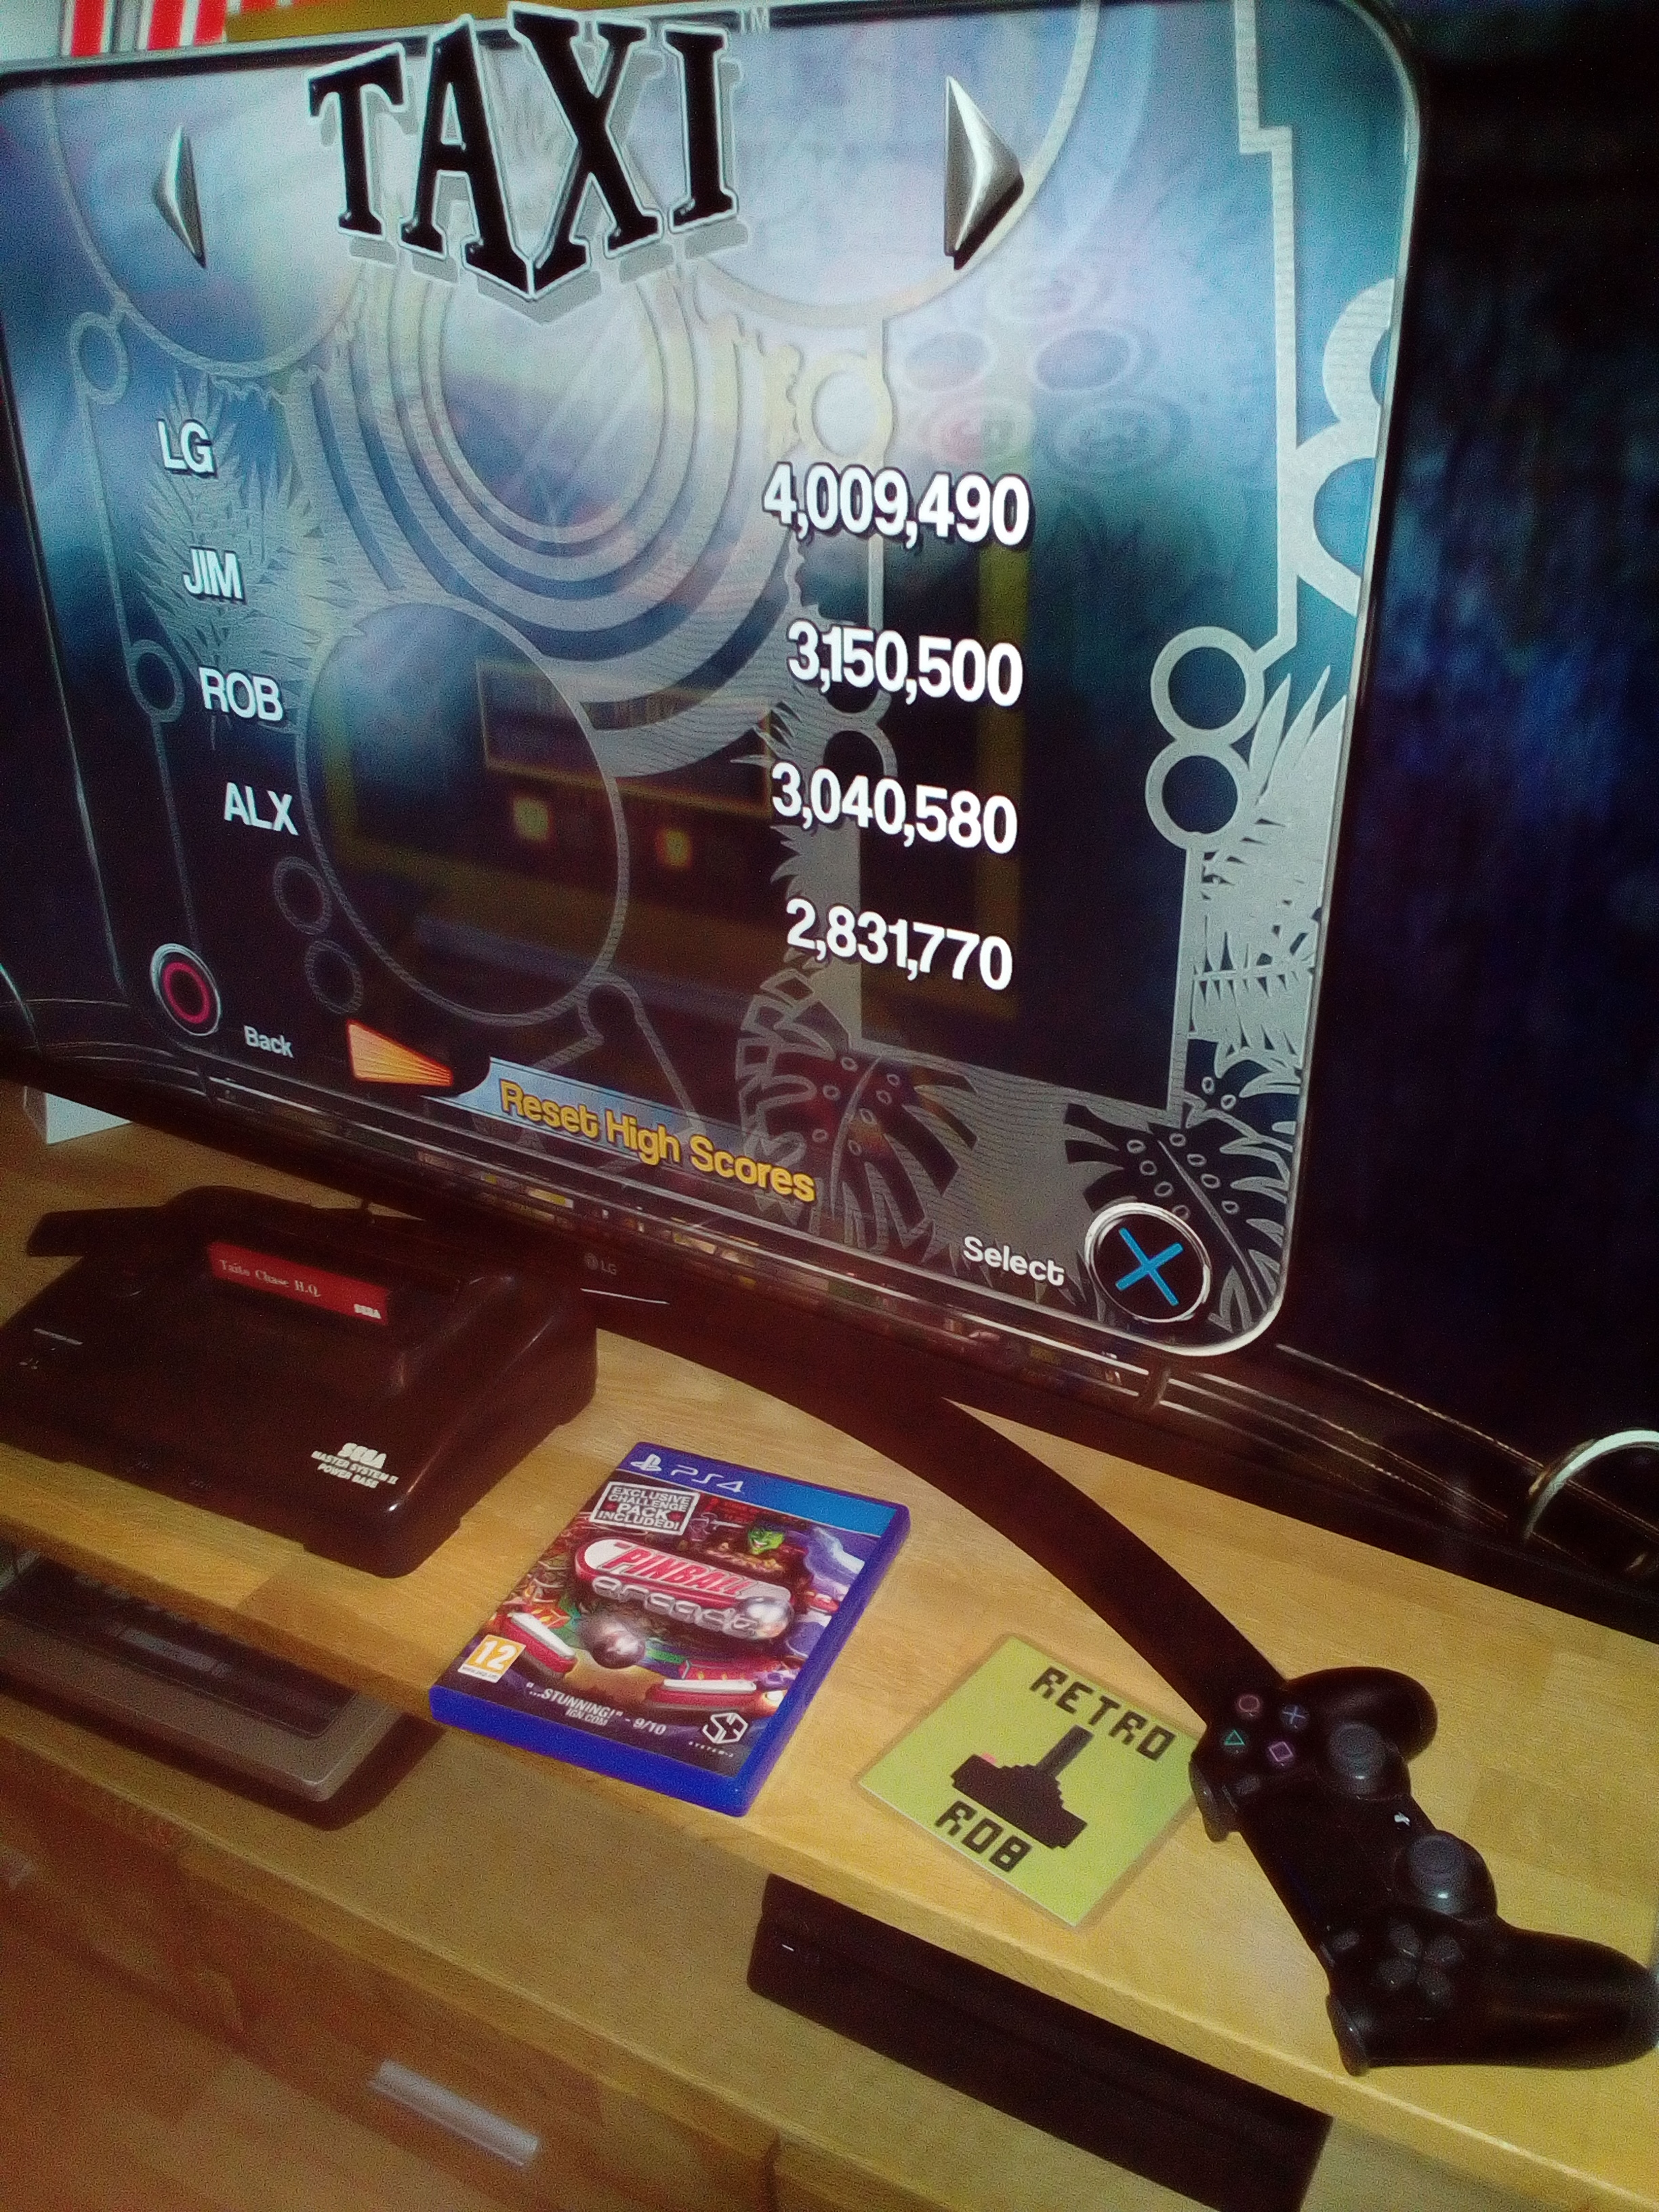 RetroRob: Pinball Arcade: Taxi (Playstation 4) 3,040,580 points on 2020-12-31 05:30:19